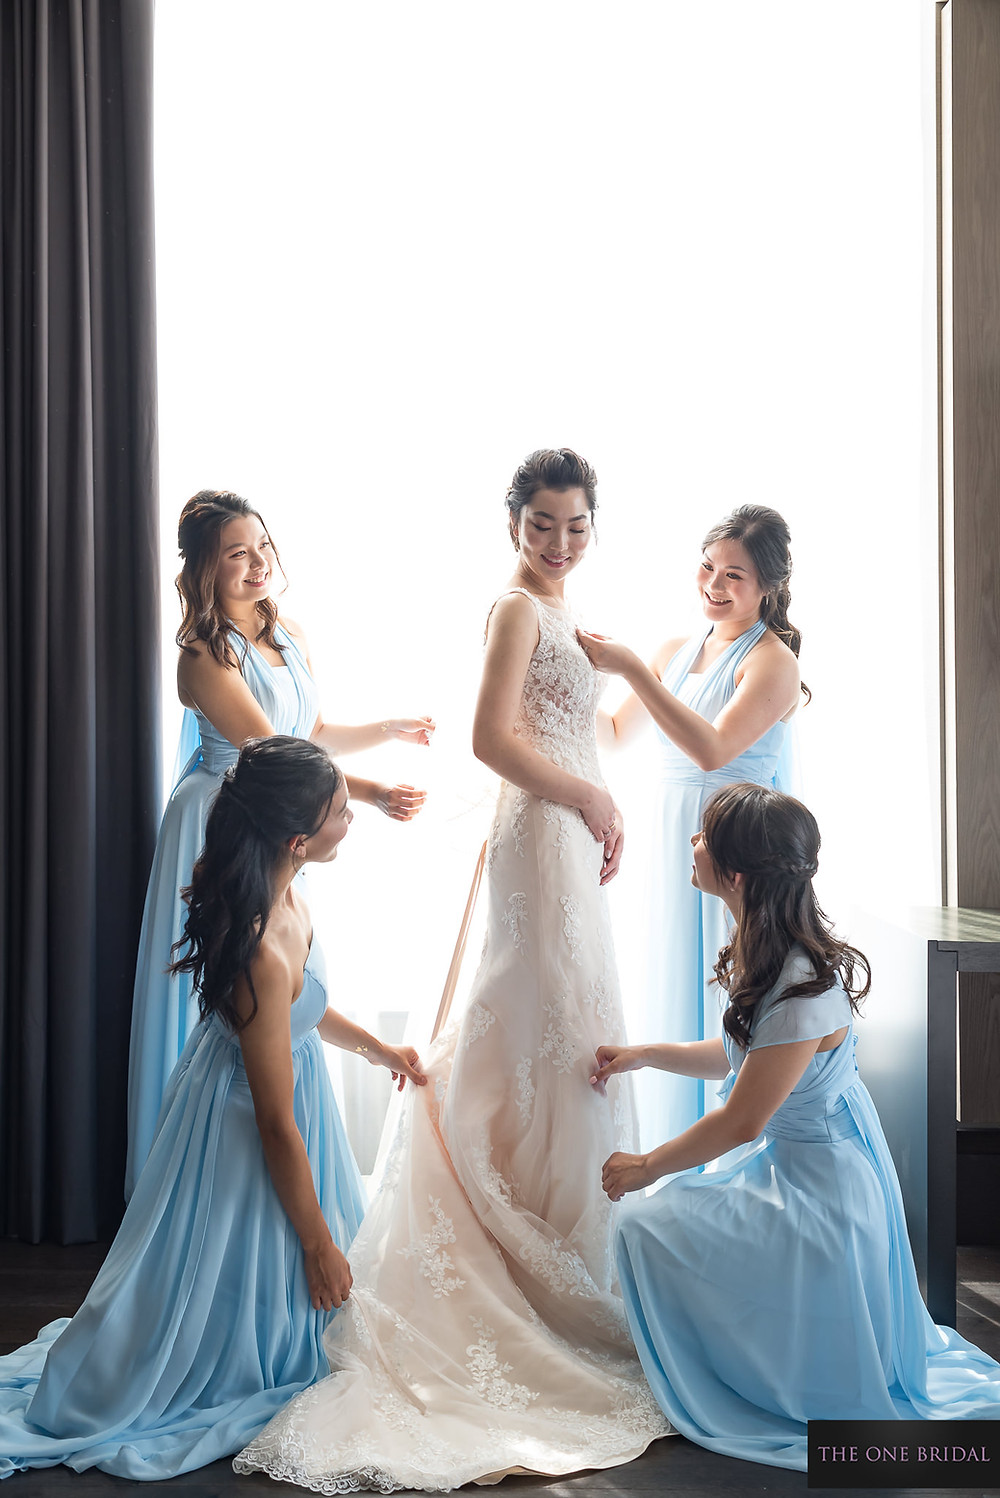 Bridesmaids and Bride putting the wedding dress up